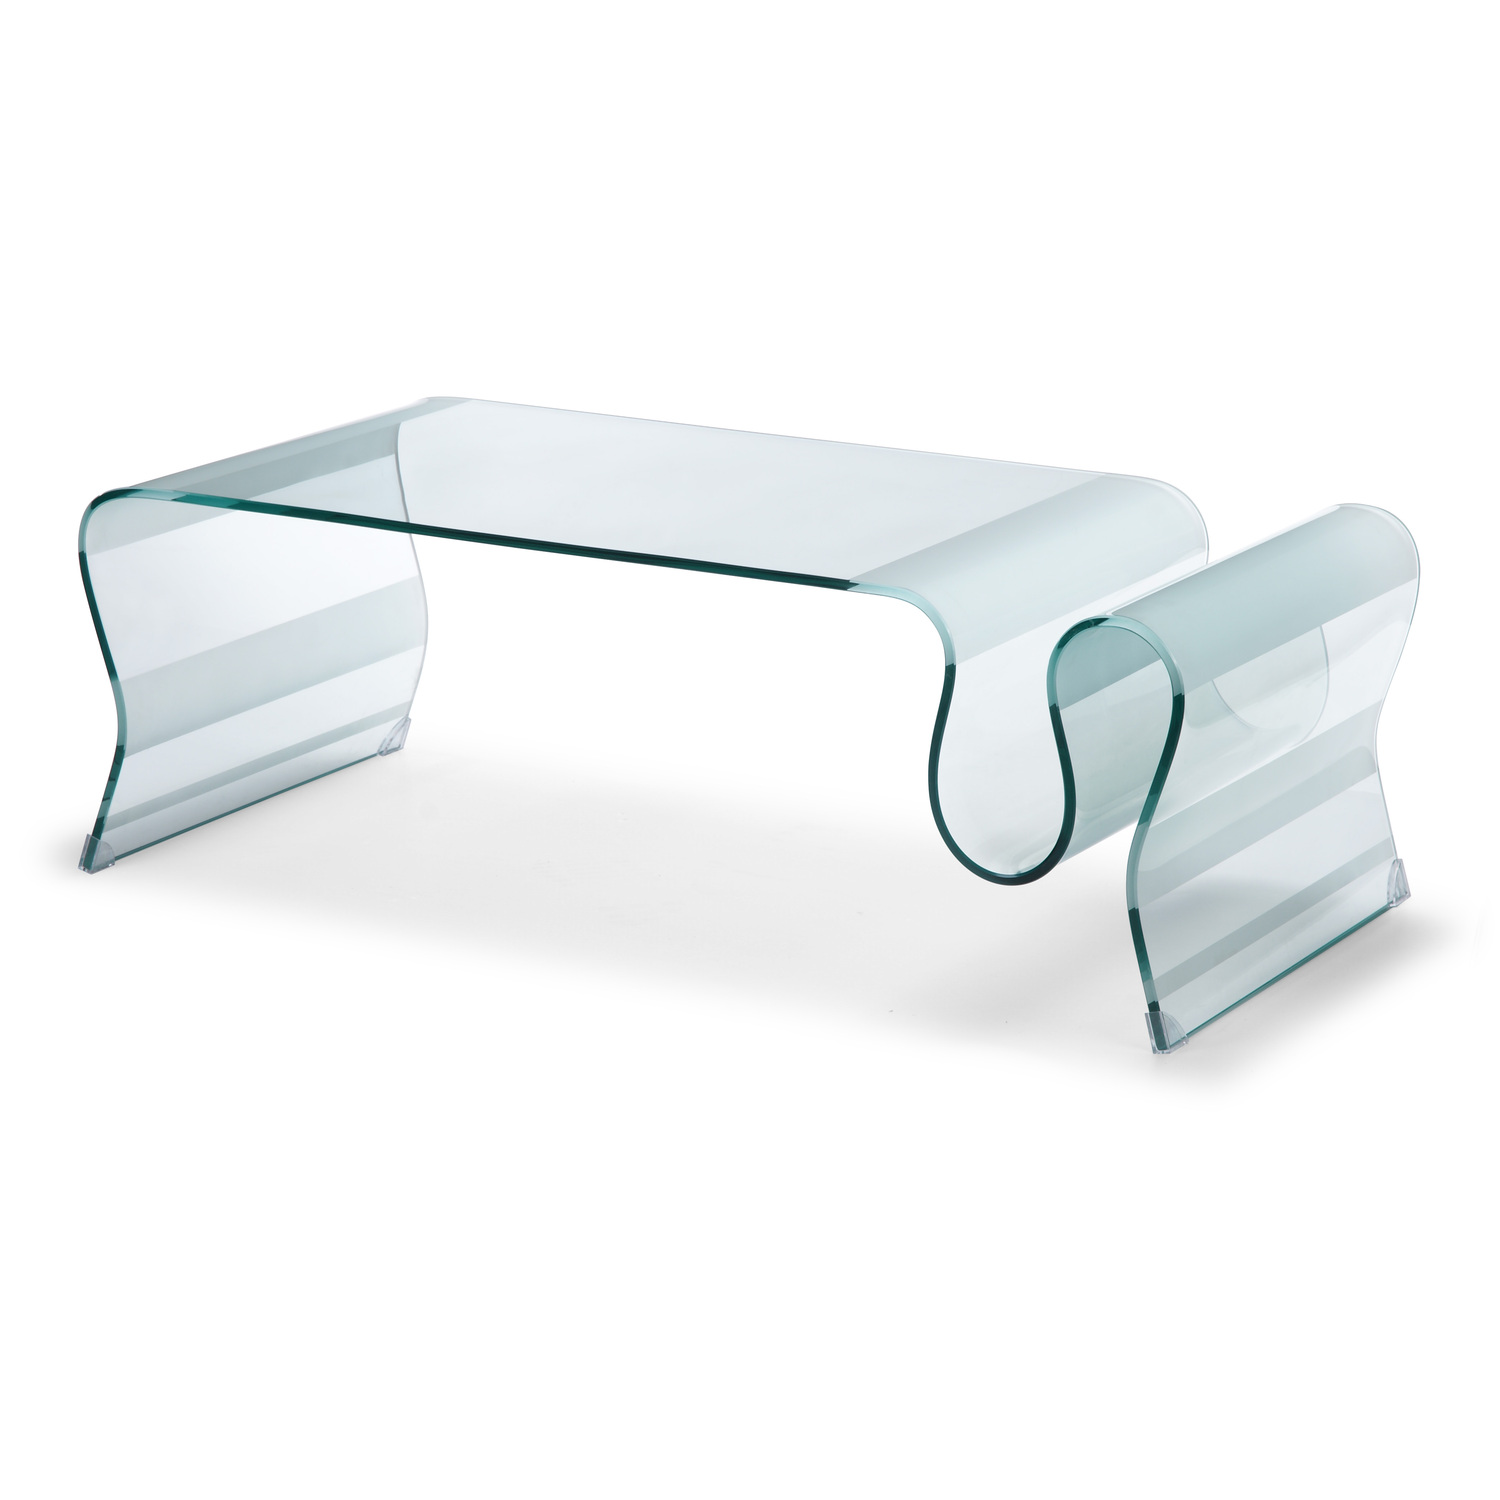 Zuo modern discovery coffee table clear glass by oj commerce 404102 Clear coffee table